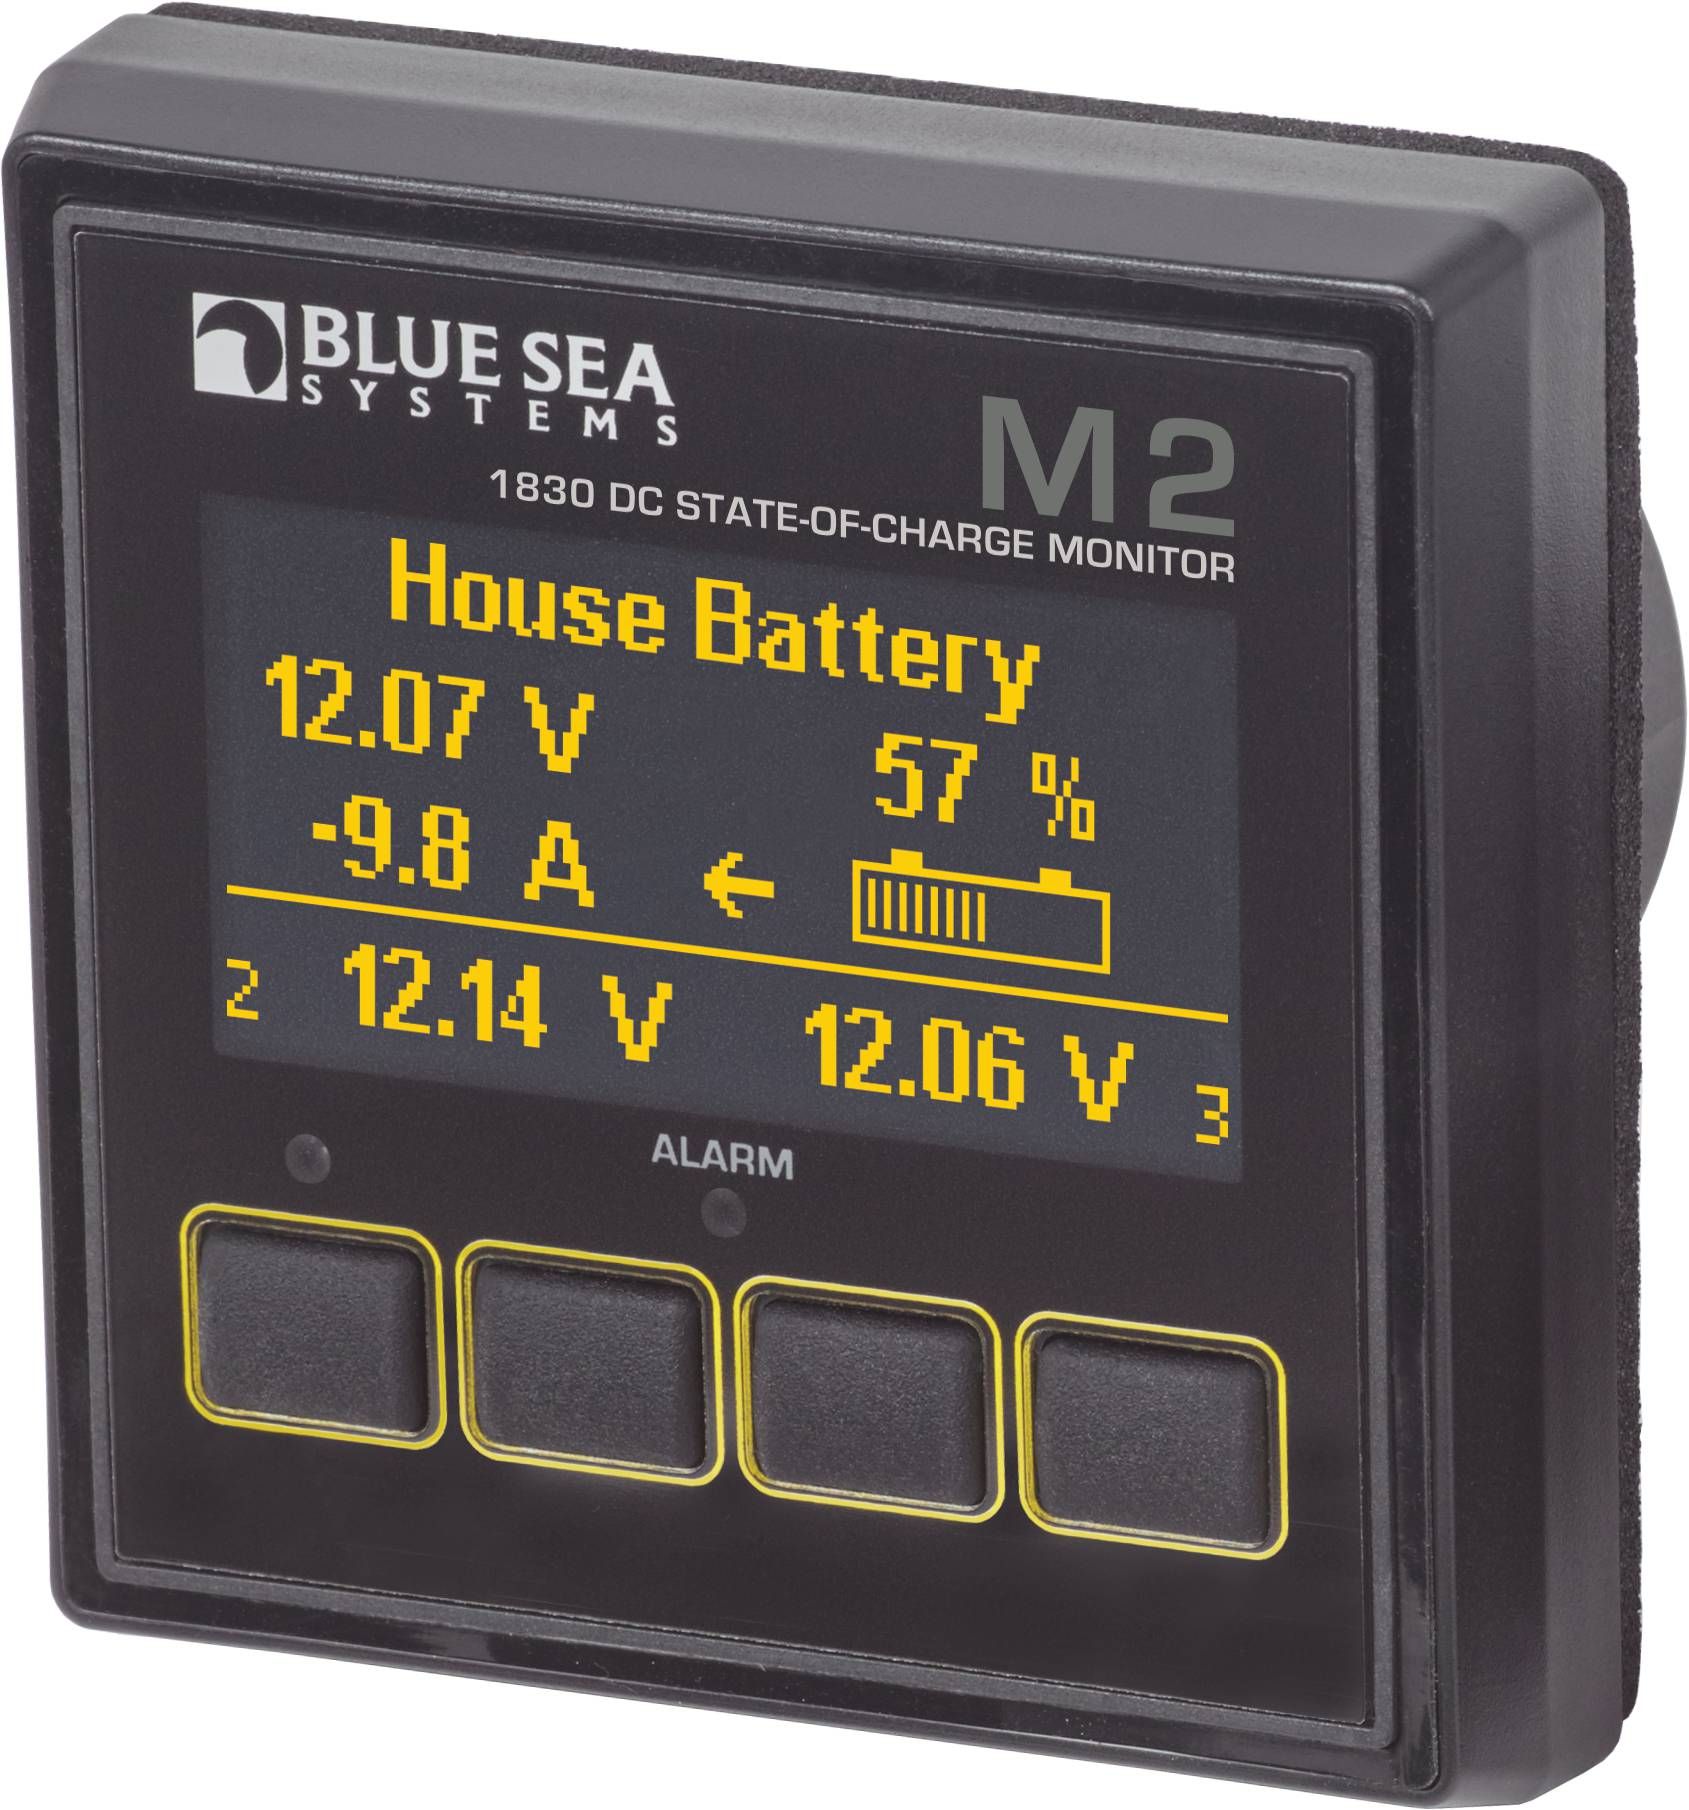 M2 DC SoC Monitor Blue Sea Systems